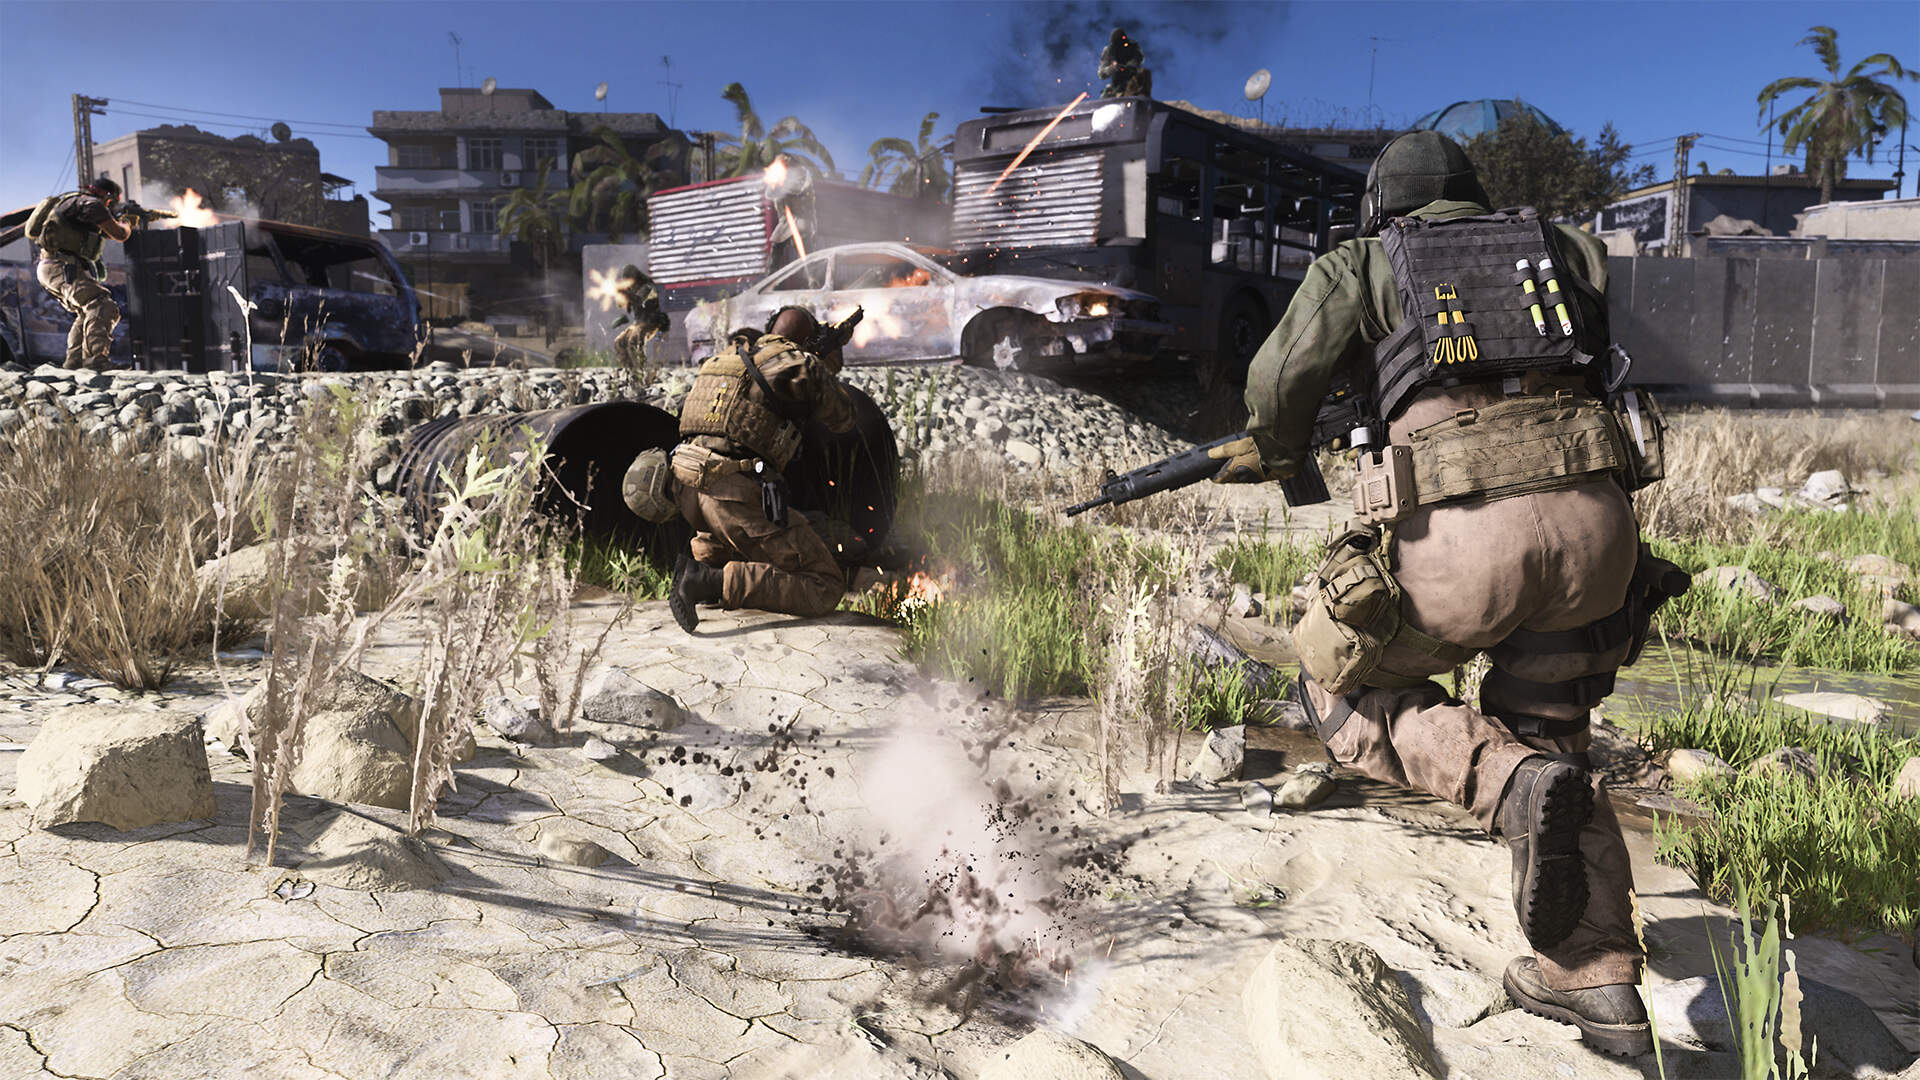 Call of Duty: Modern Warfare's Biggest Day One Problems Seem to be Lighting and Map Size